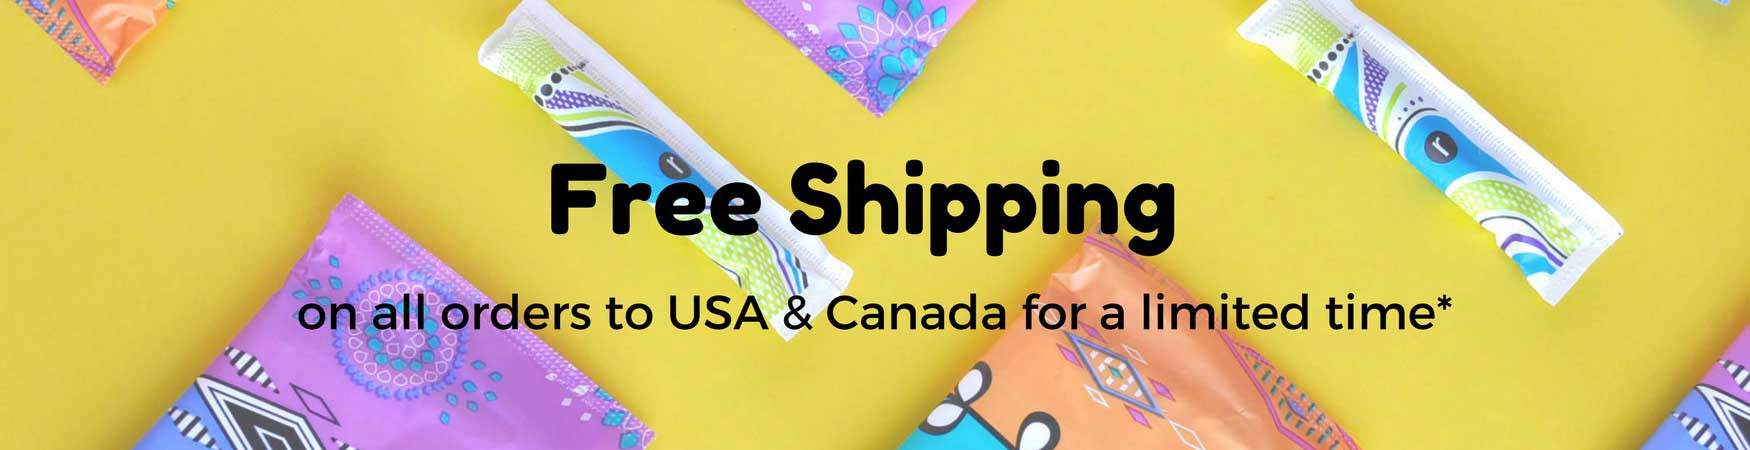 free shipping to usa and canada for a limited time